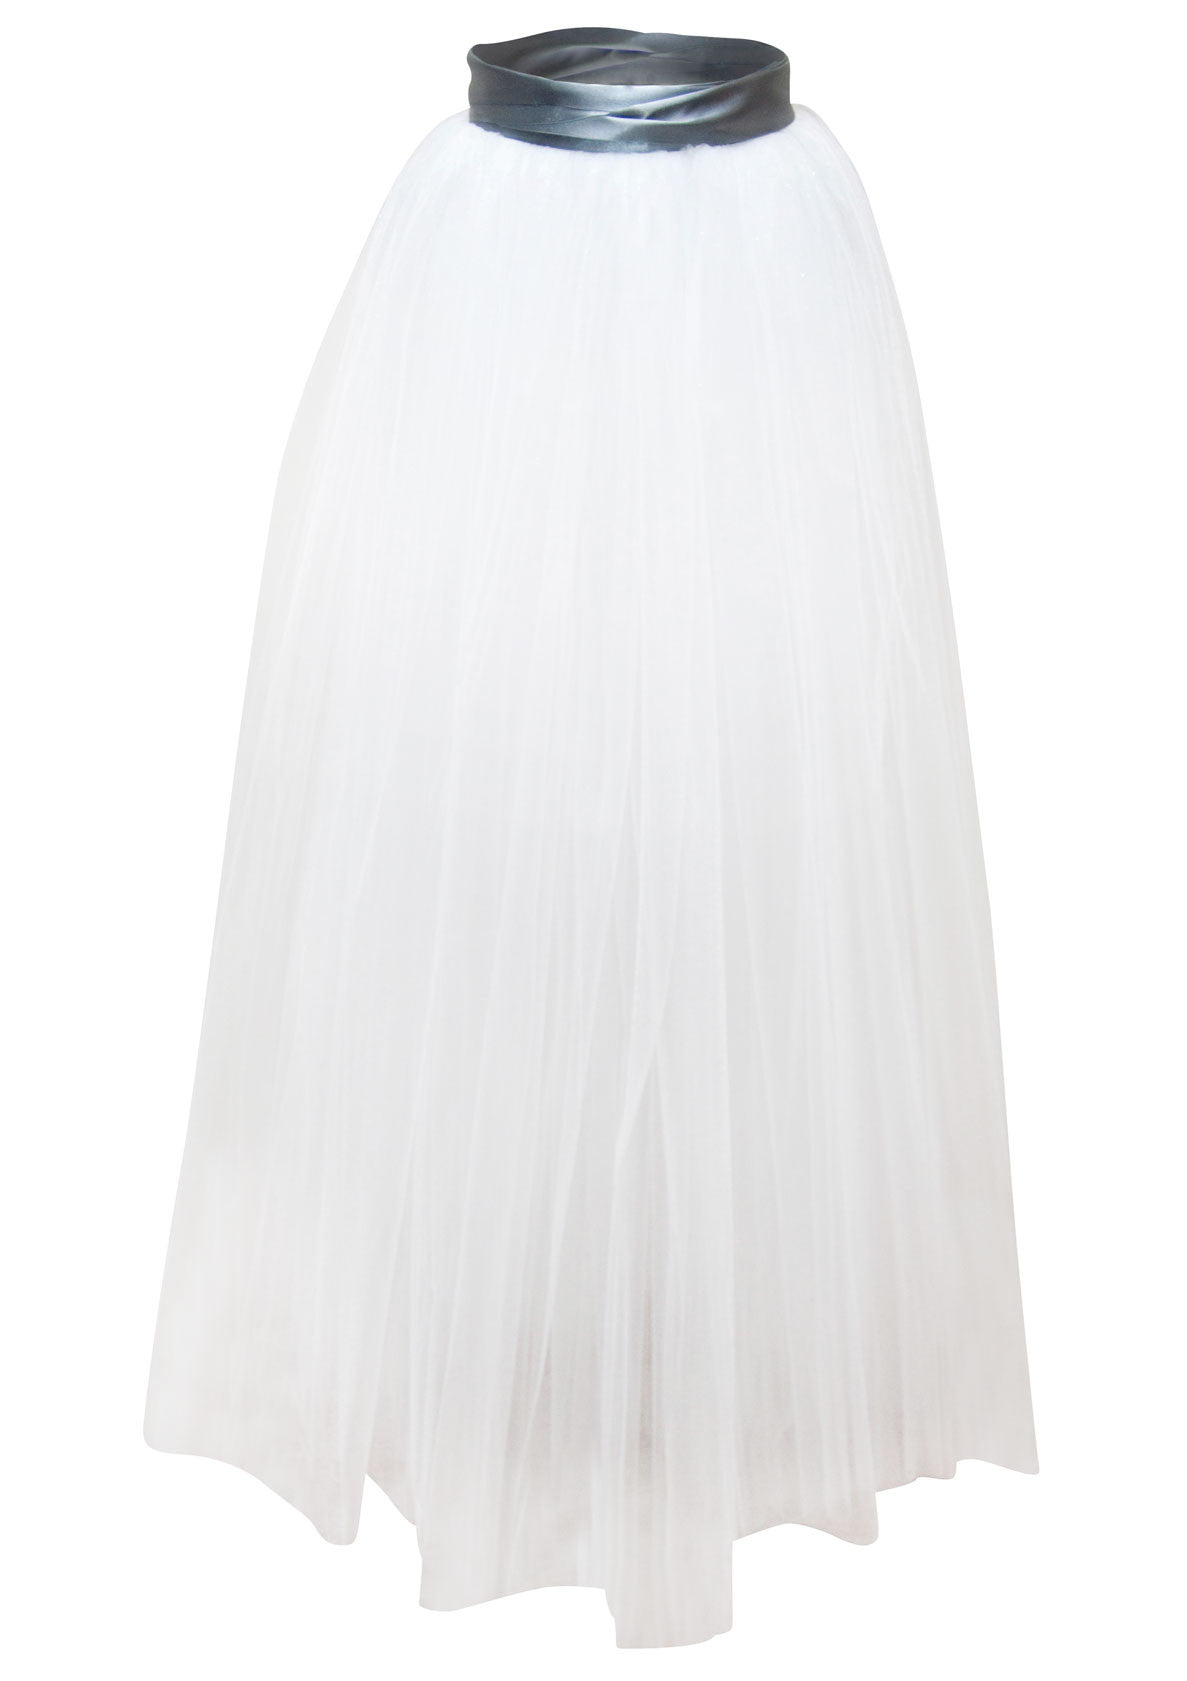 Bridal Tulle Top Skirt - Rare Dirndl